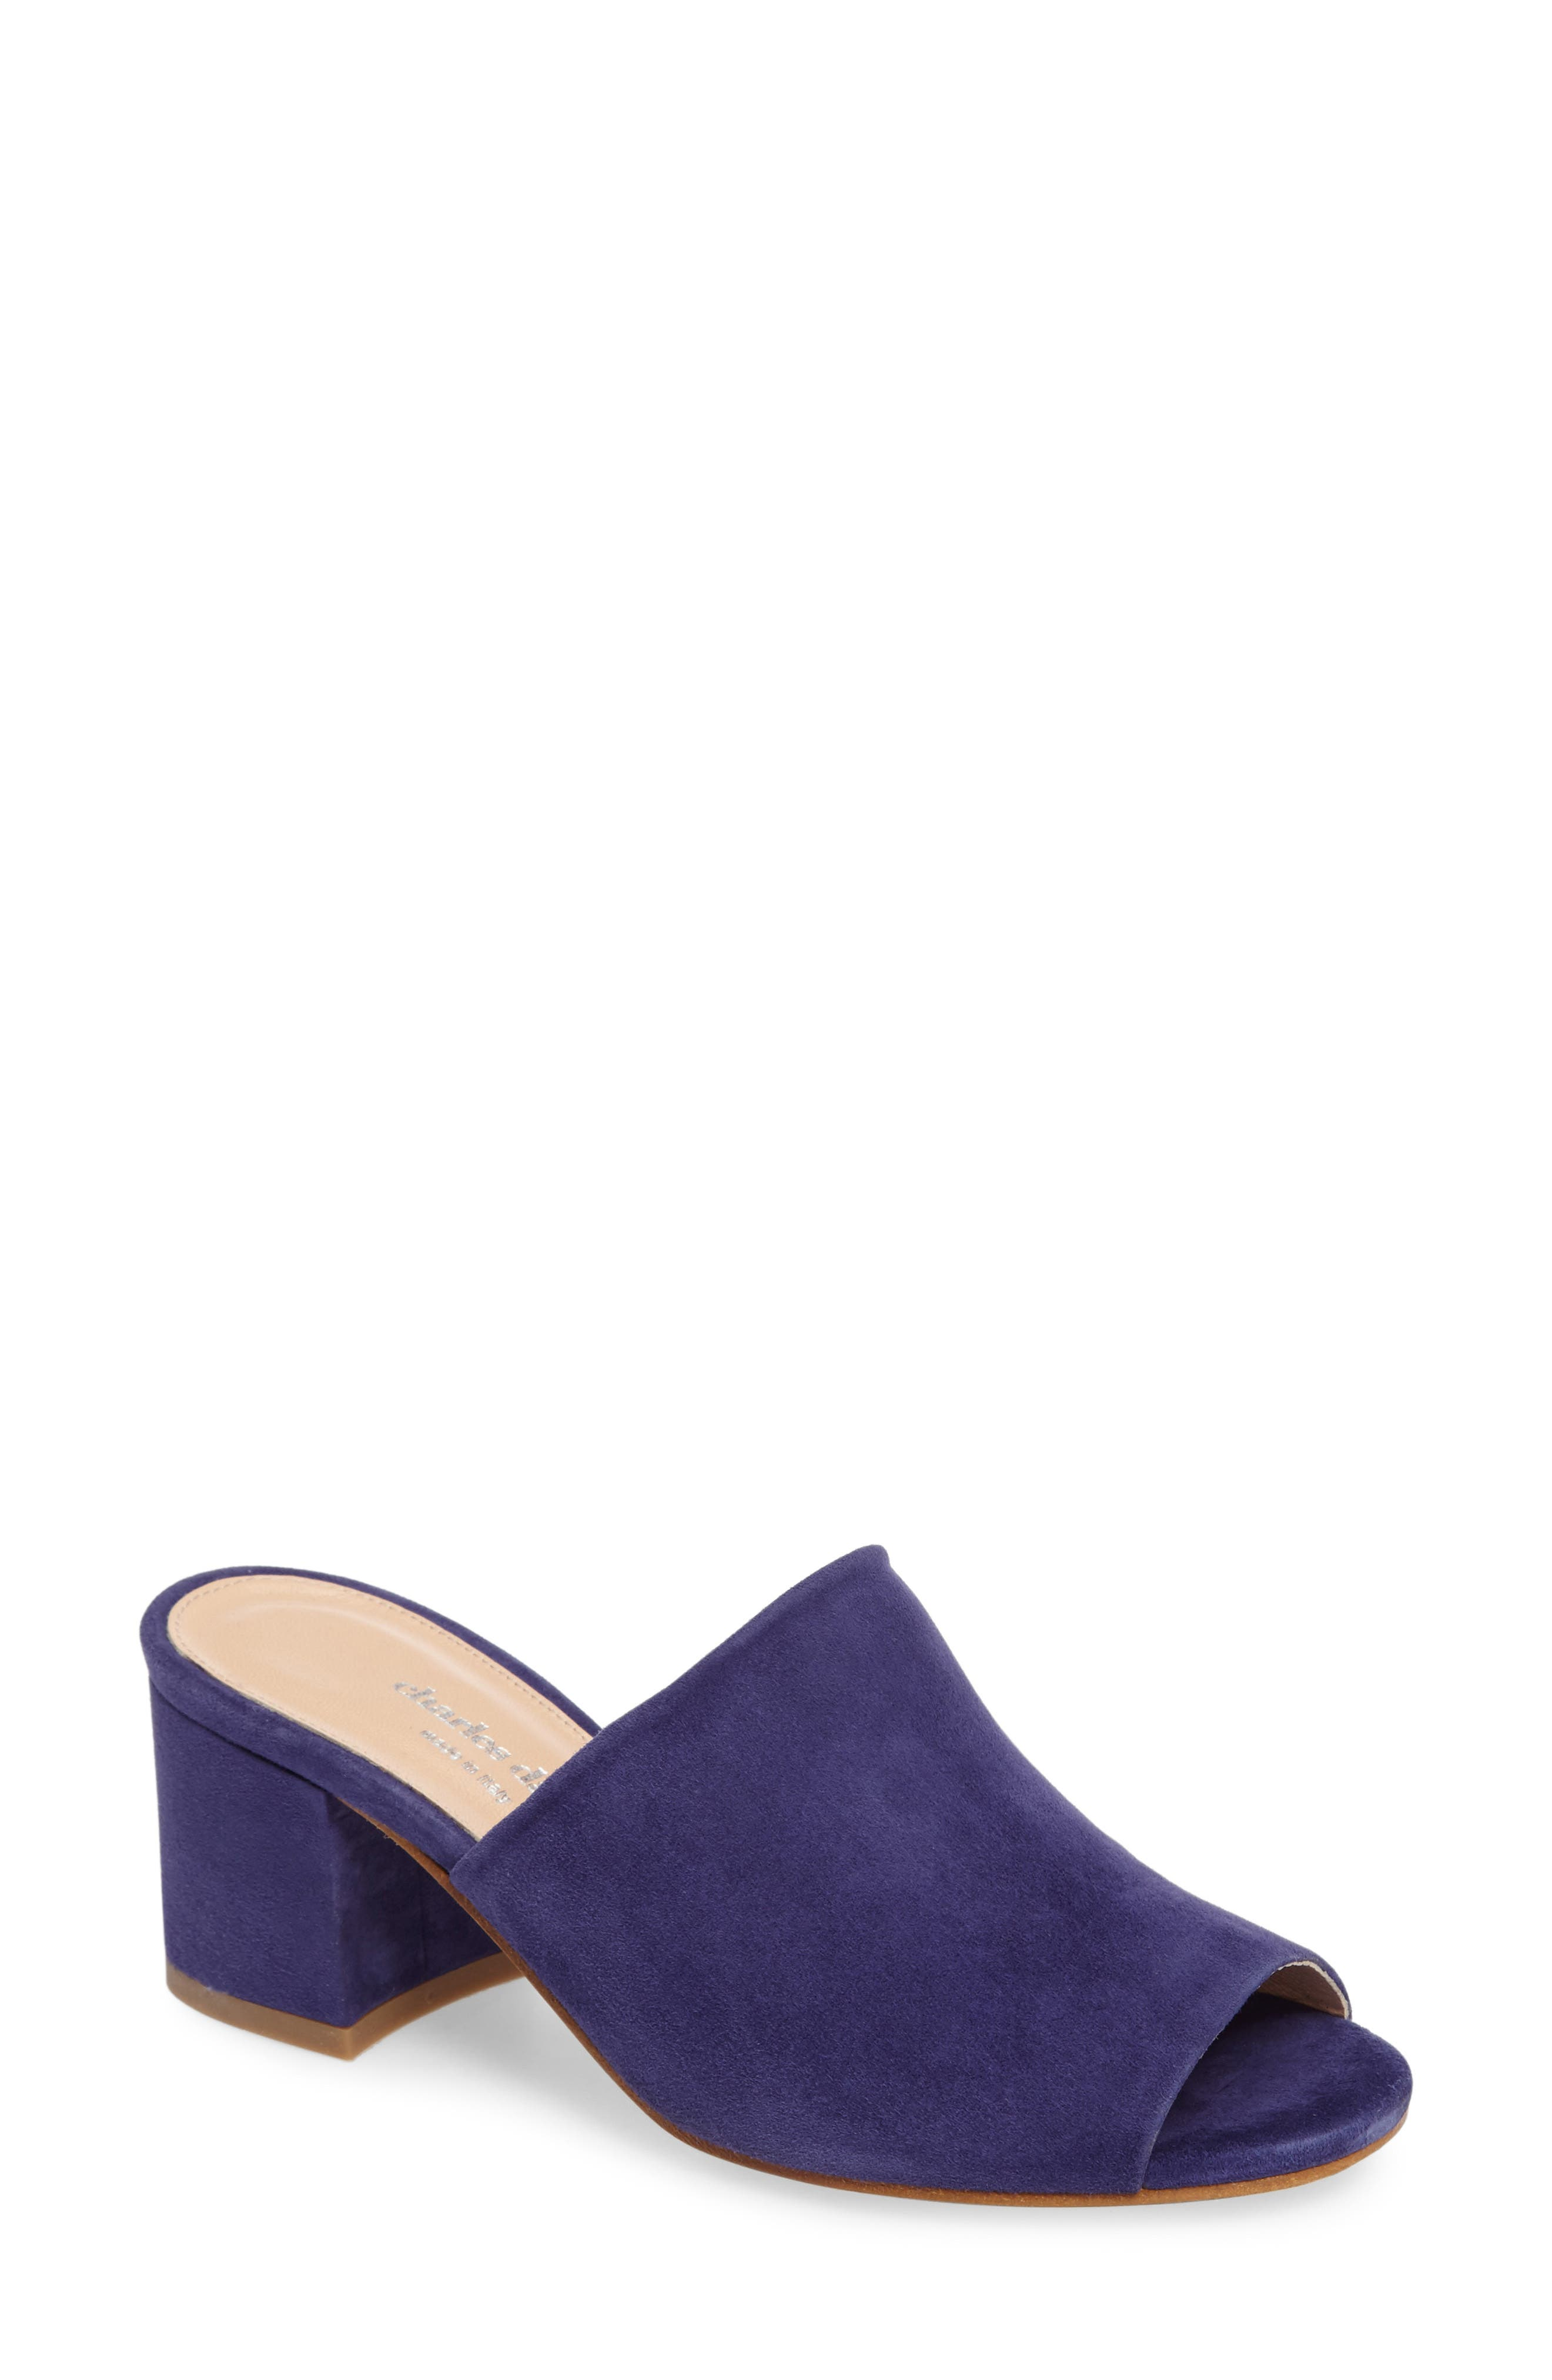 Charles by Charles David Brie Open Toe Mule (Women)